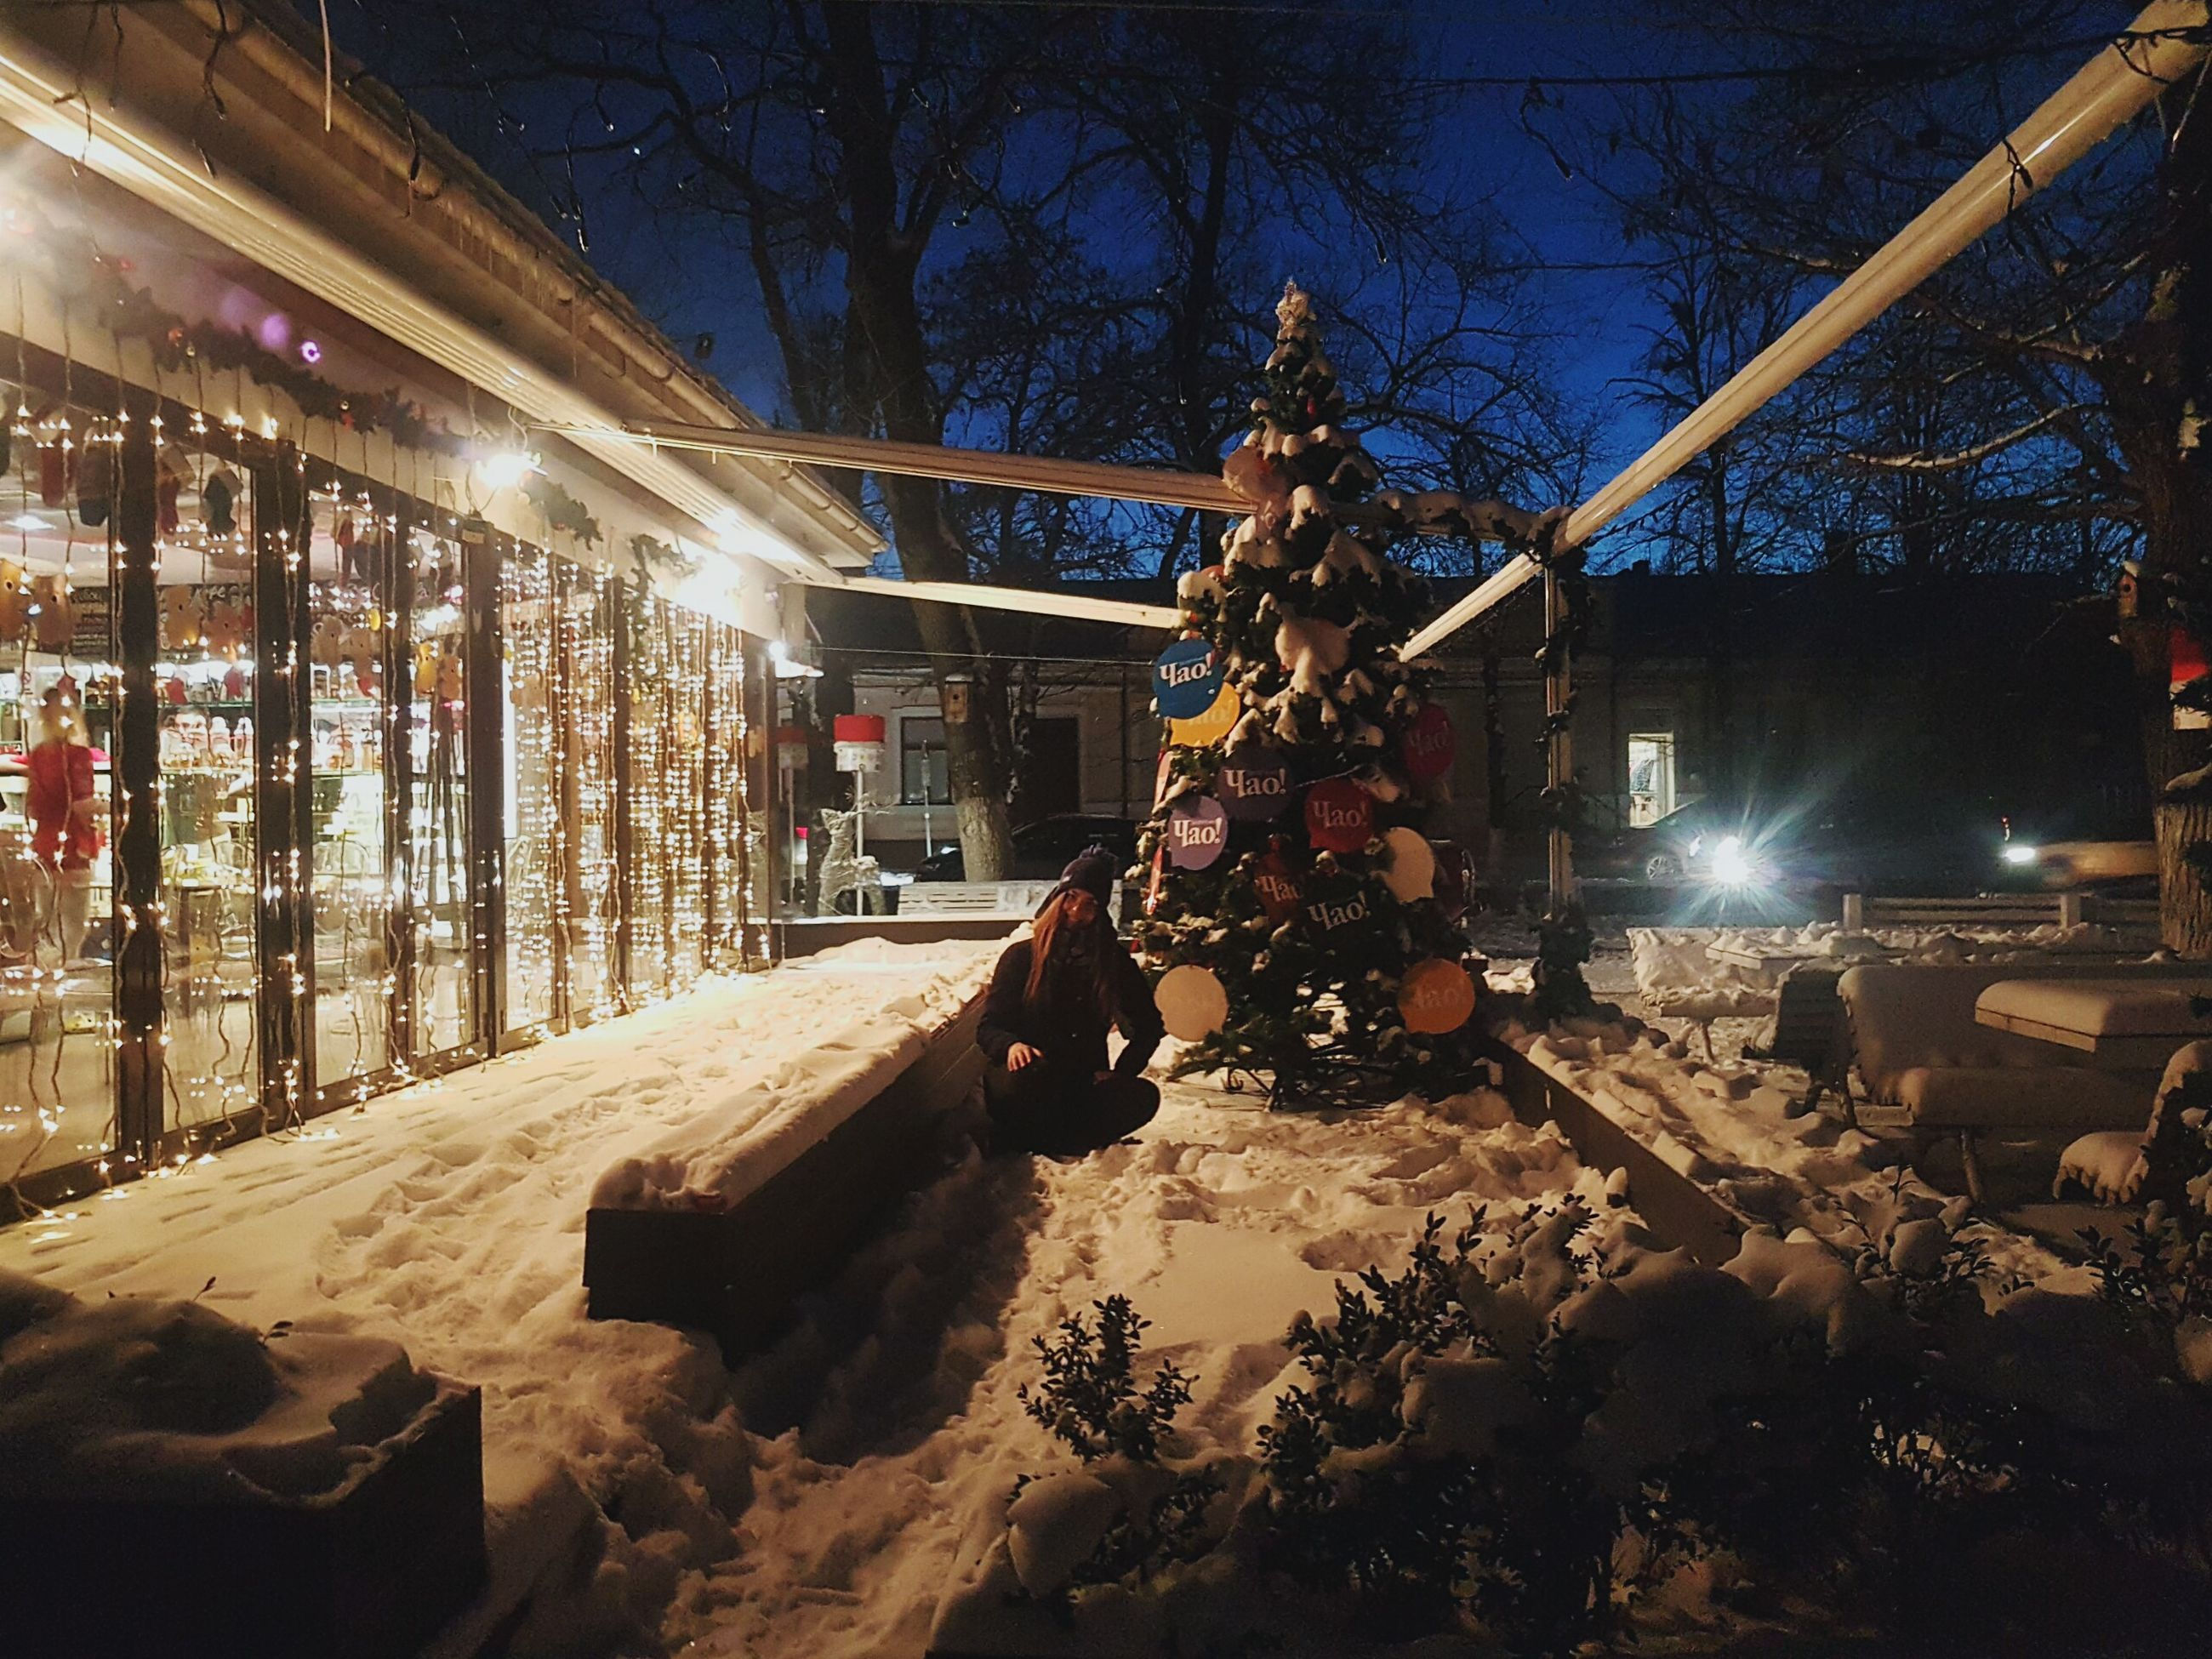 night, illuminated, christmas, dusk, christmas lights, winter, christmas decoration, snow, tree, christmas market, cold temperature, city, christmas tree, people, architecture, outdoors